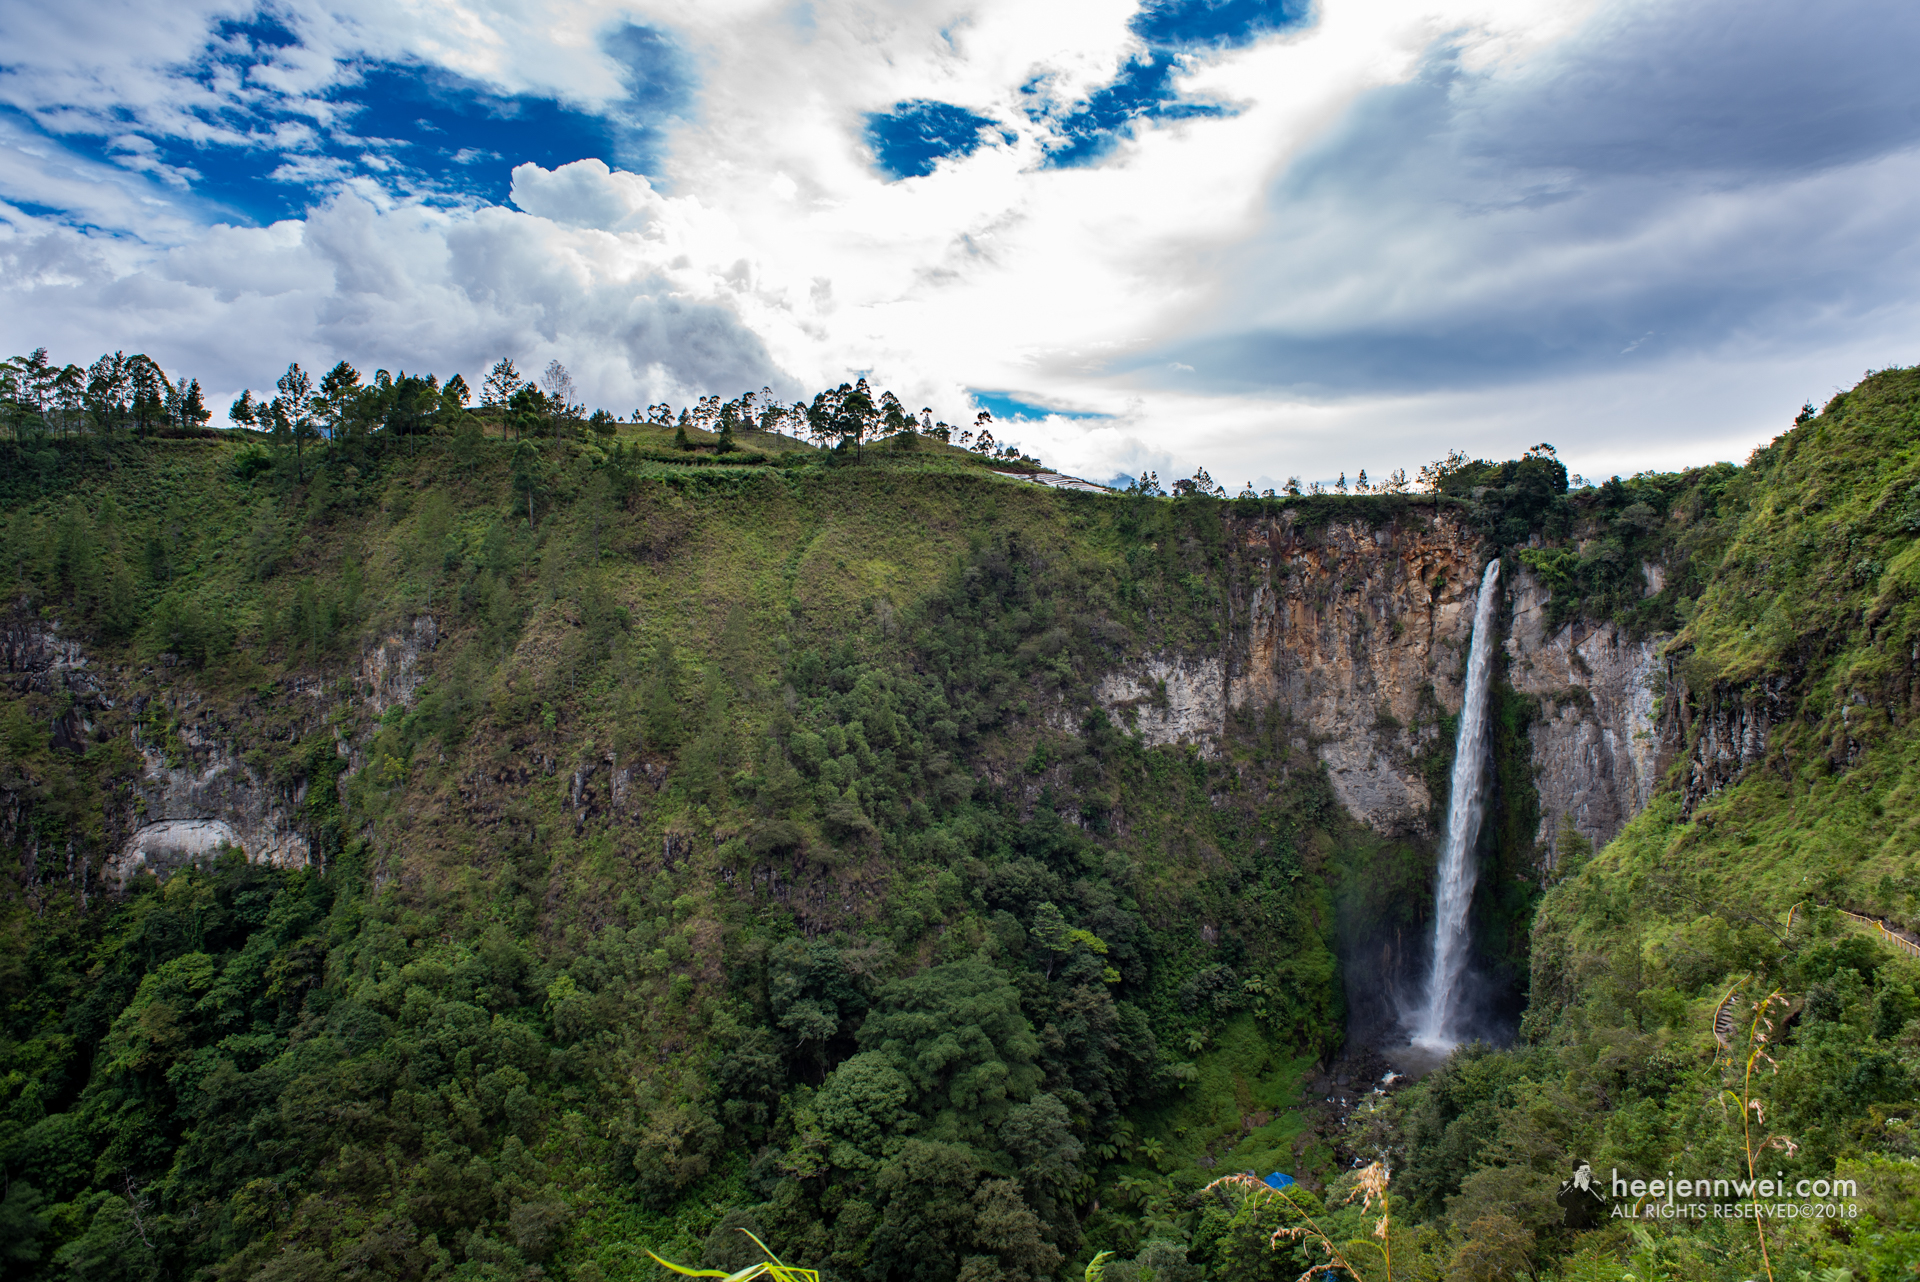 One of the tourist attractions in North Sumatra located in Karo district, Sipiso Piso Waterfall. From a rock opening 120 metres above magnificent gorge in Kabanjahe, flows one of the tallest waterfalls.